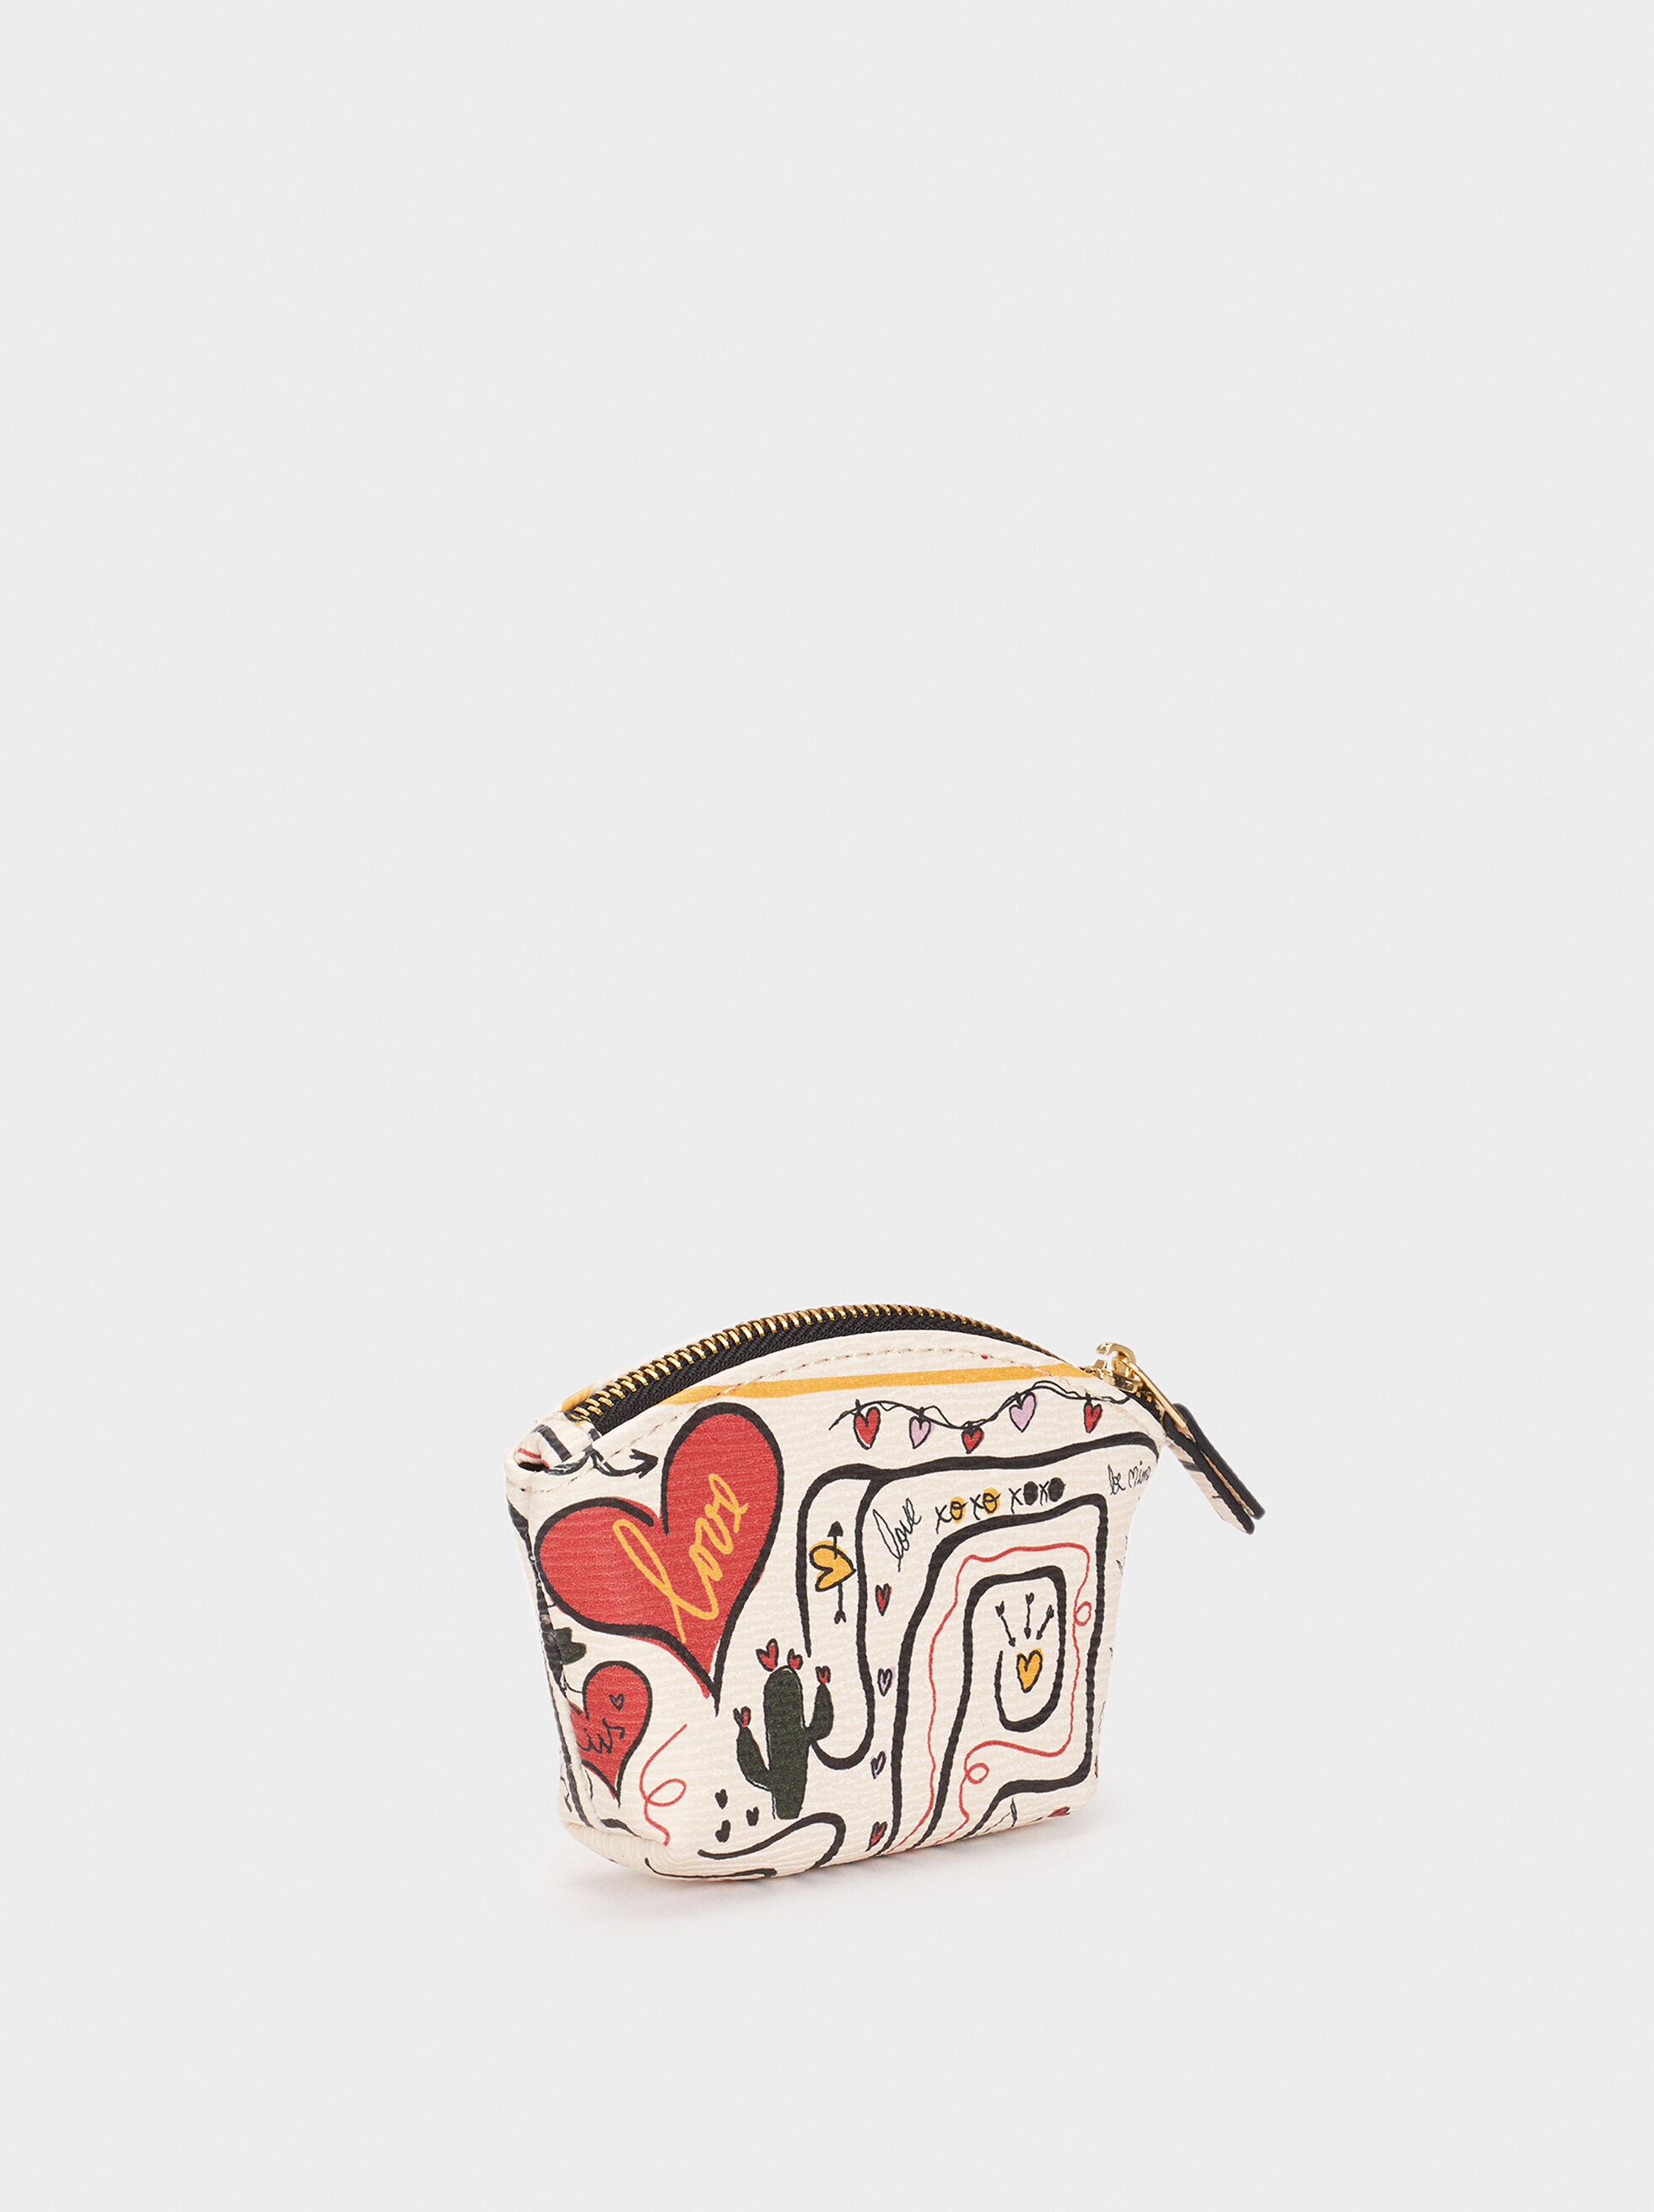 We Are Love Print Small Purse, Ecru, hi-res